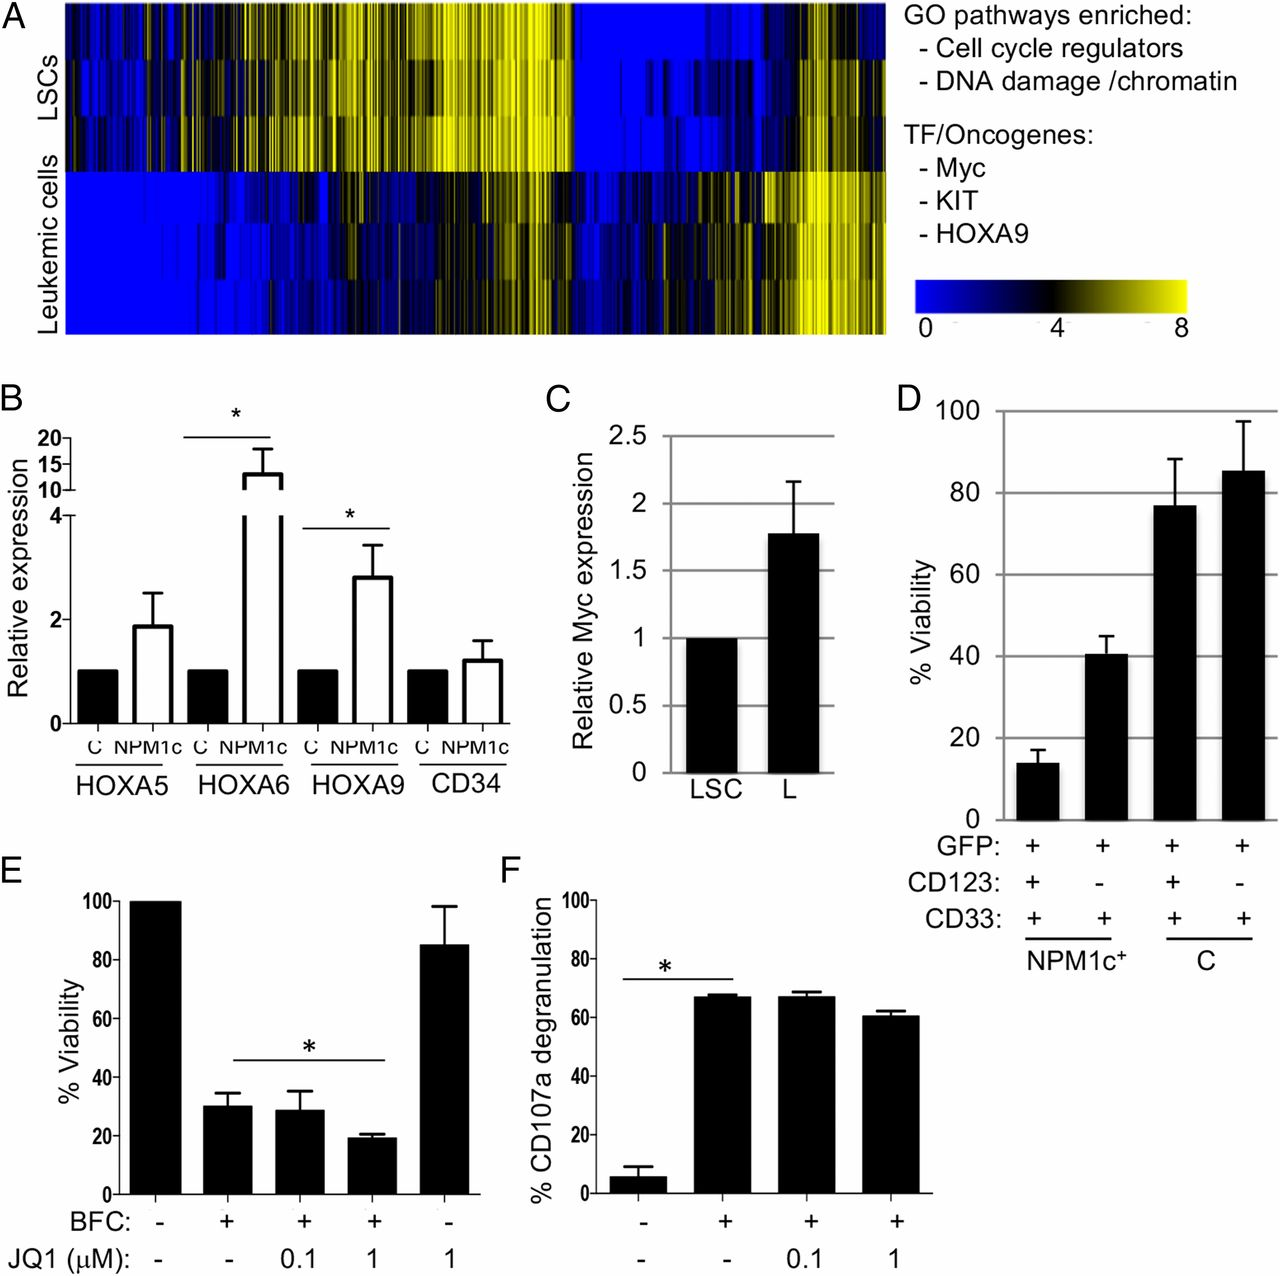 Induction and Therapeutic Targeting of Human NPM1c+ Myeloid